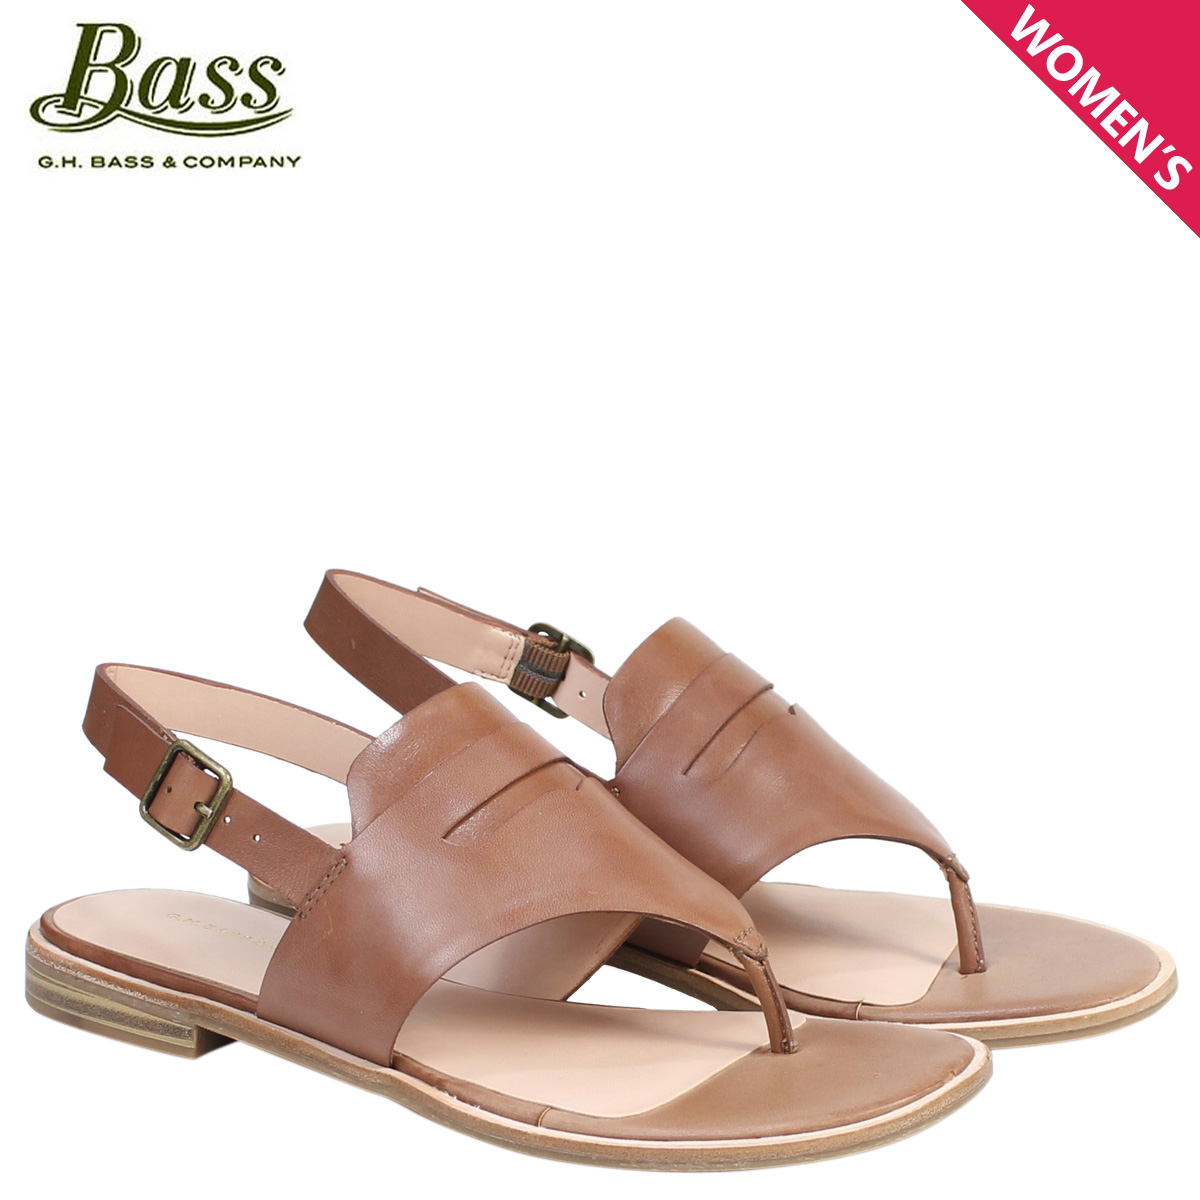 e3dd9bfc1b0 G.H. BASS sandals lady's G H bus tong ankle strap MADDIE THONG SANDAL  71-20,338 shoes brown